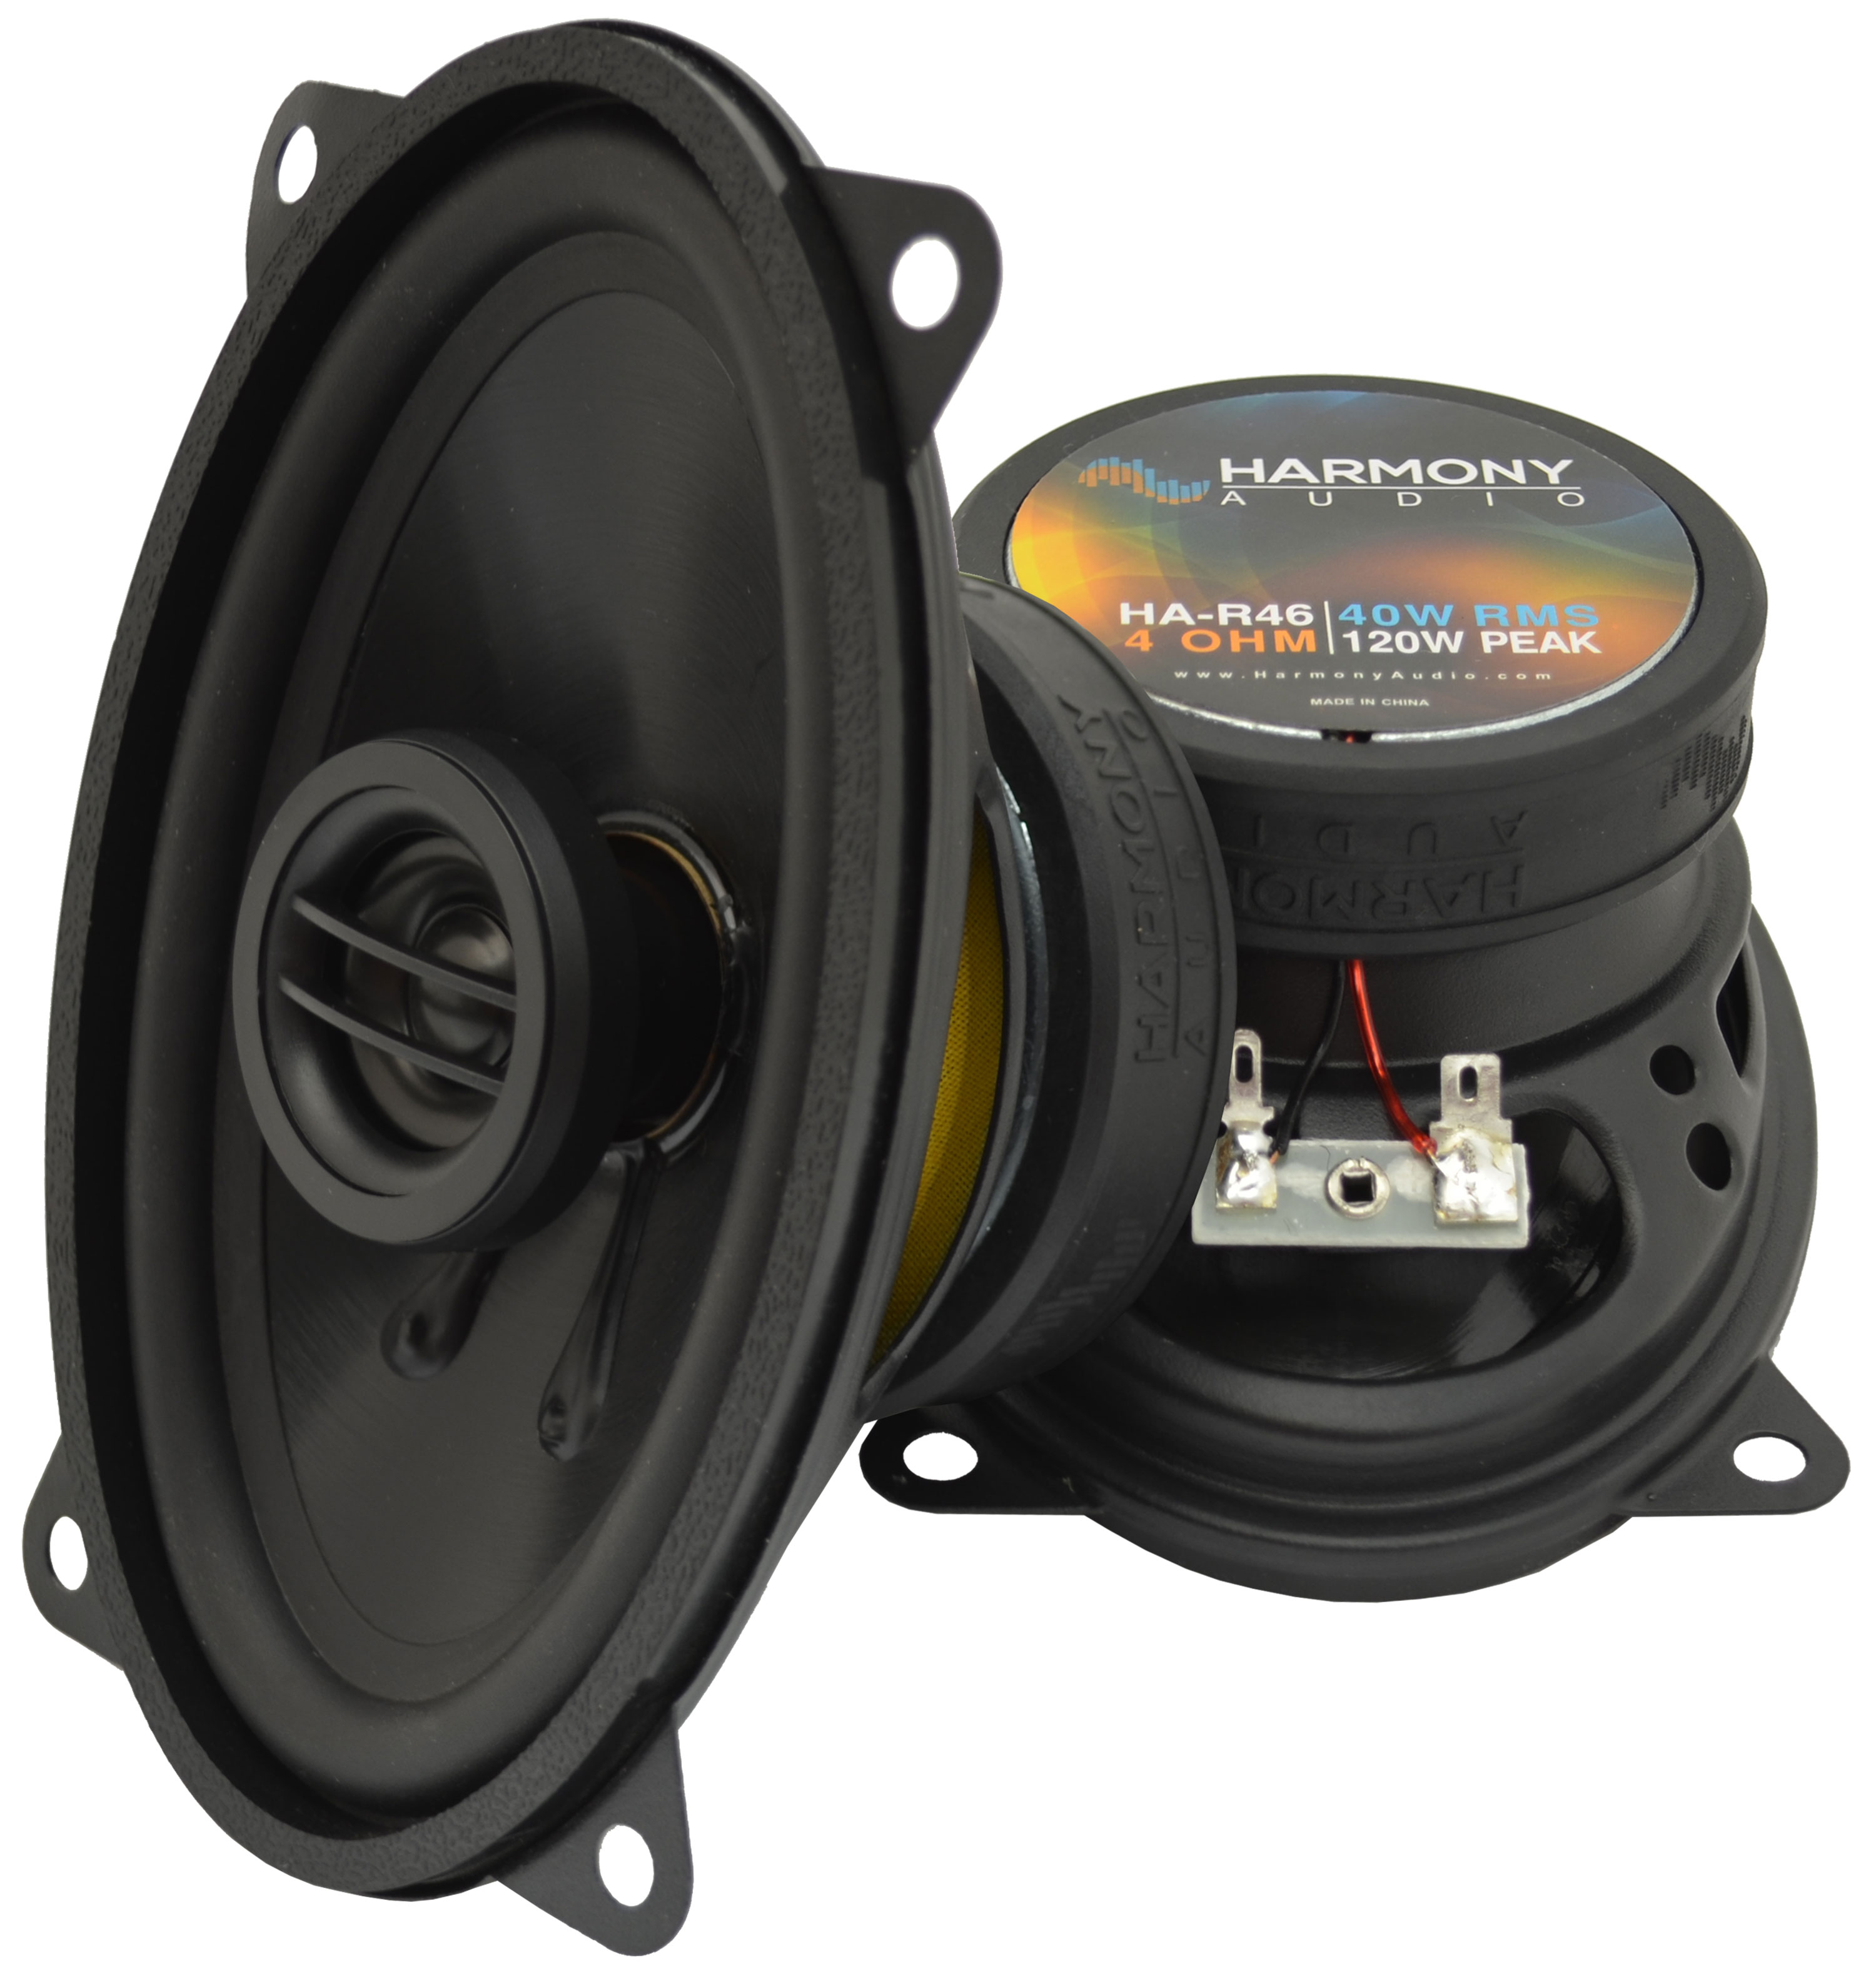 Fits BMW 5 Series 1979-1989 Rear Deck Replacement Harmony HA-R46 Speakers New